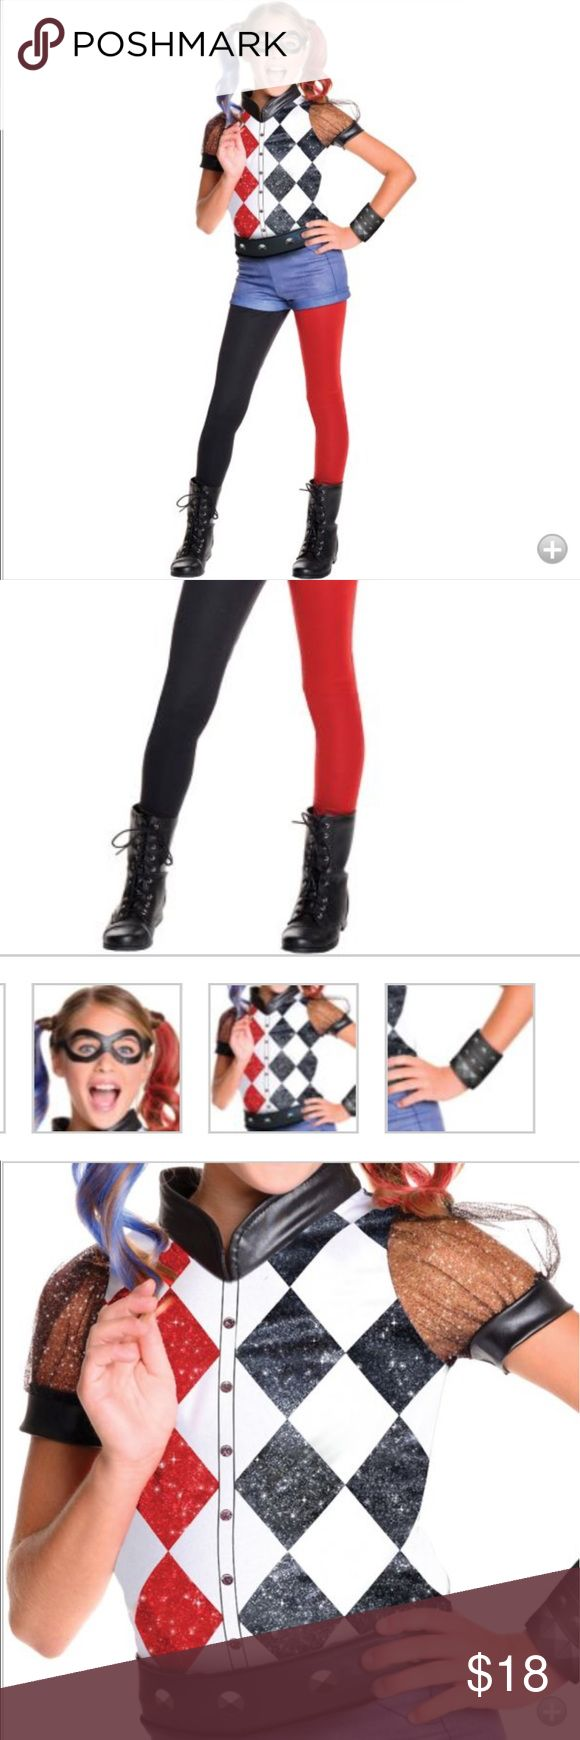 Harley Quinn kids Costume In used condition; my daughter lost the hair extensions: 1 red, 1 blue. They can find extra at the costume store for cheap. Fits up to a size 6/ 6x Costumes Halloween